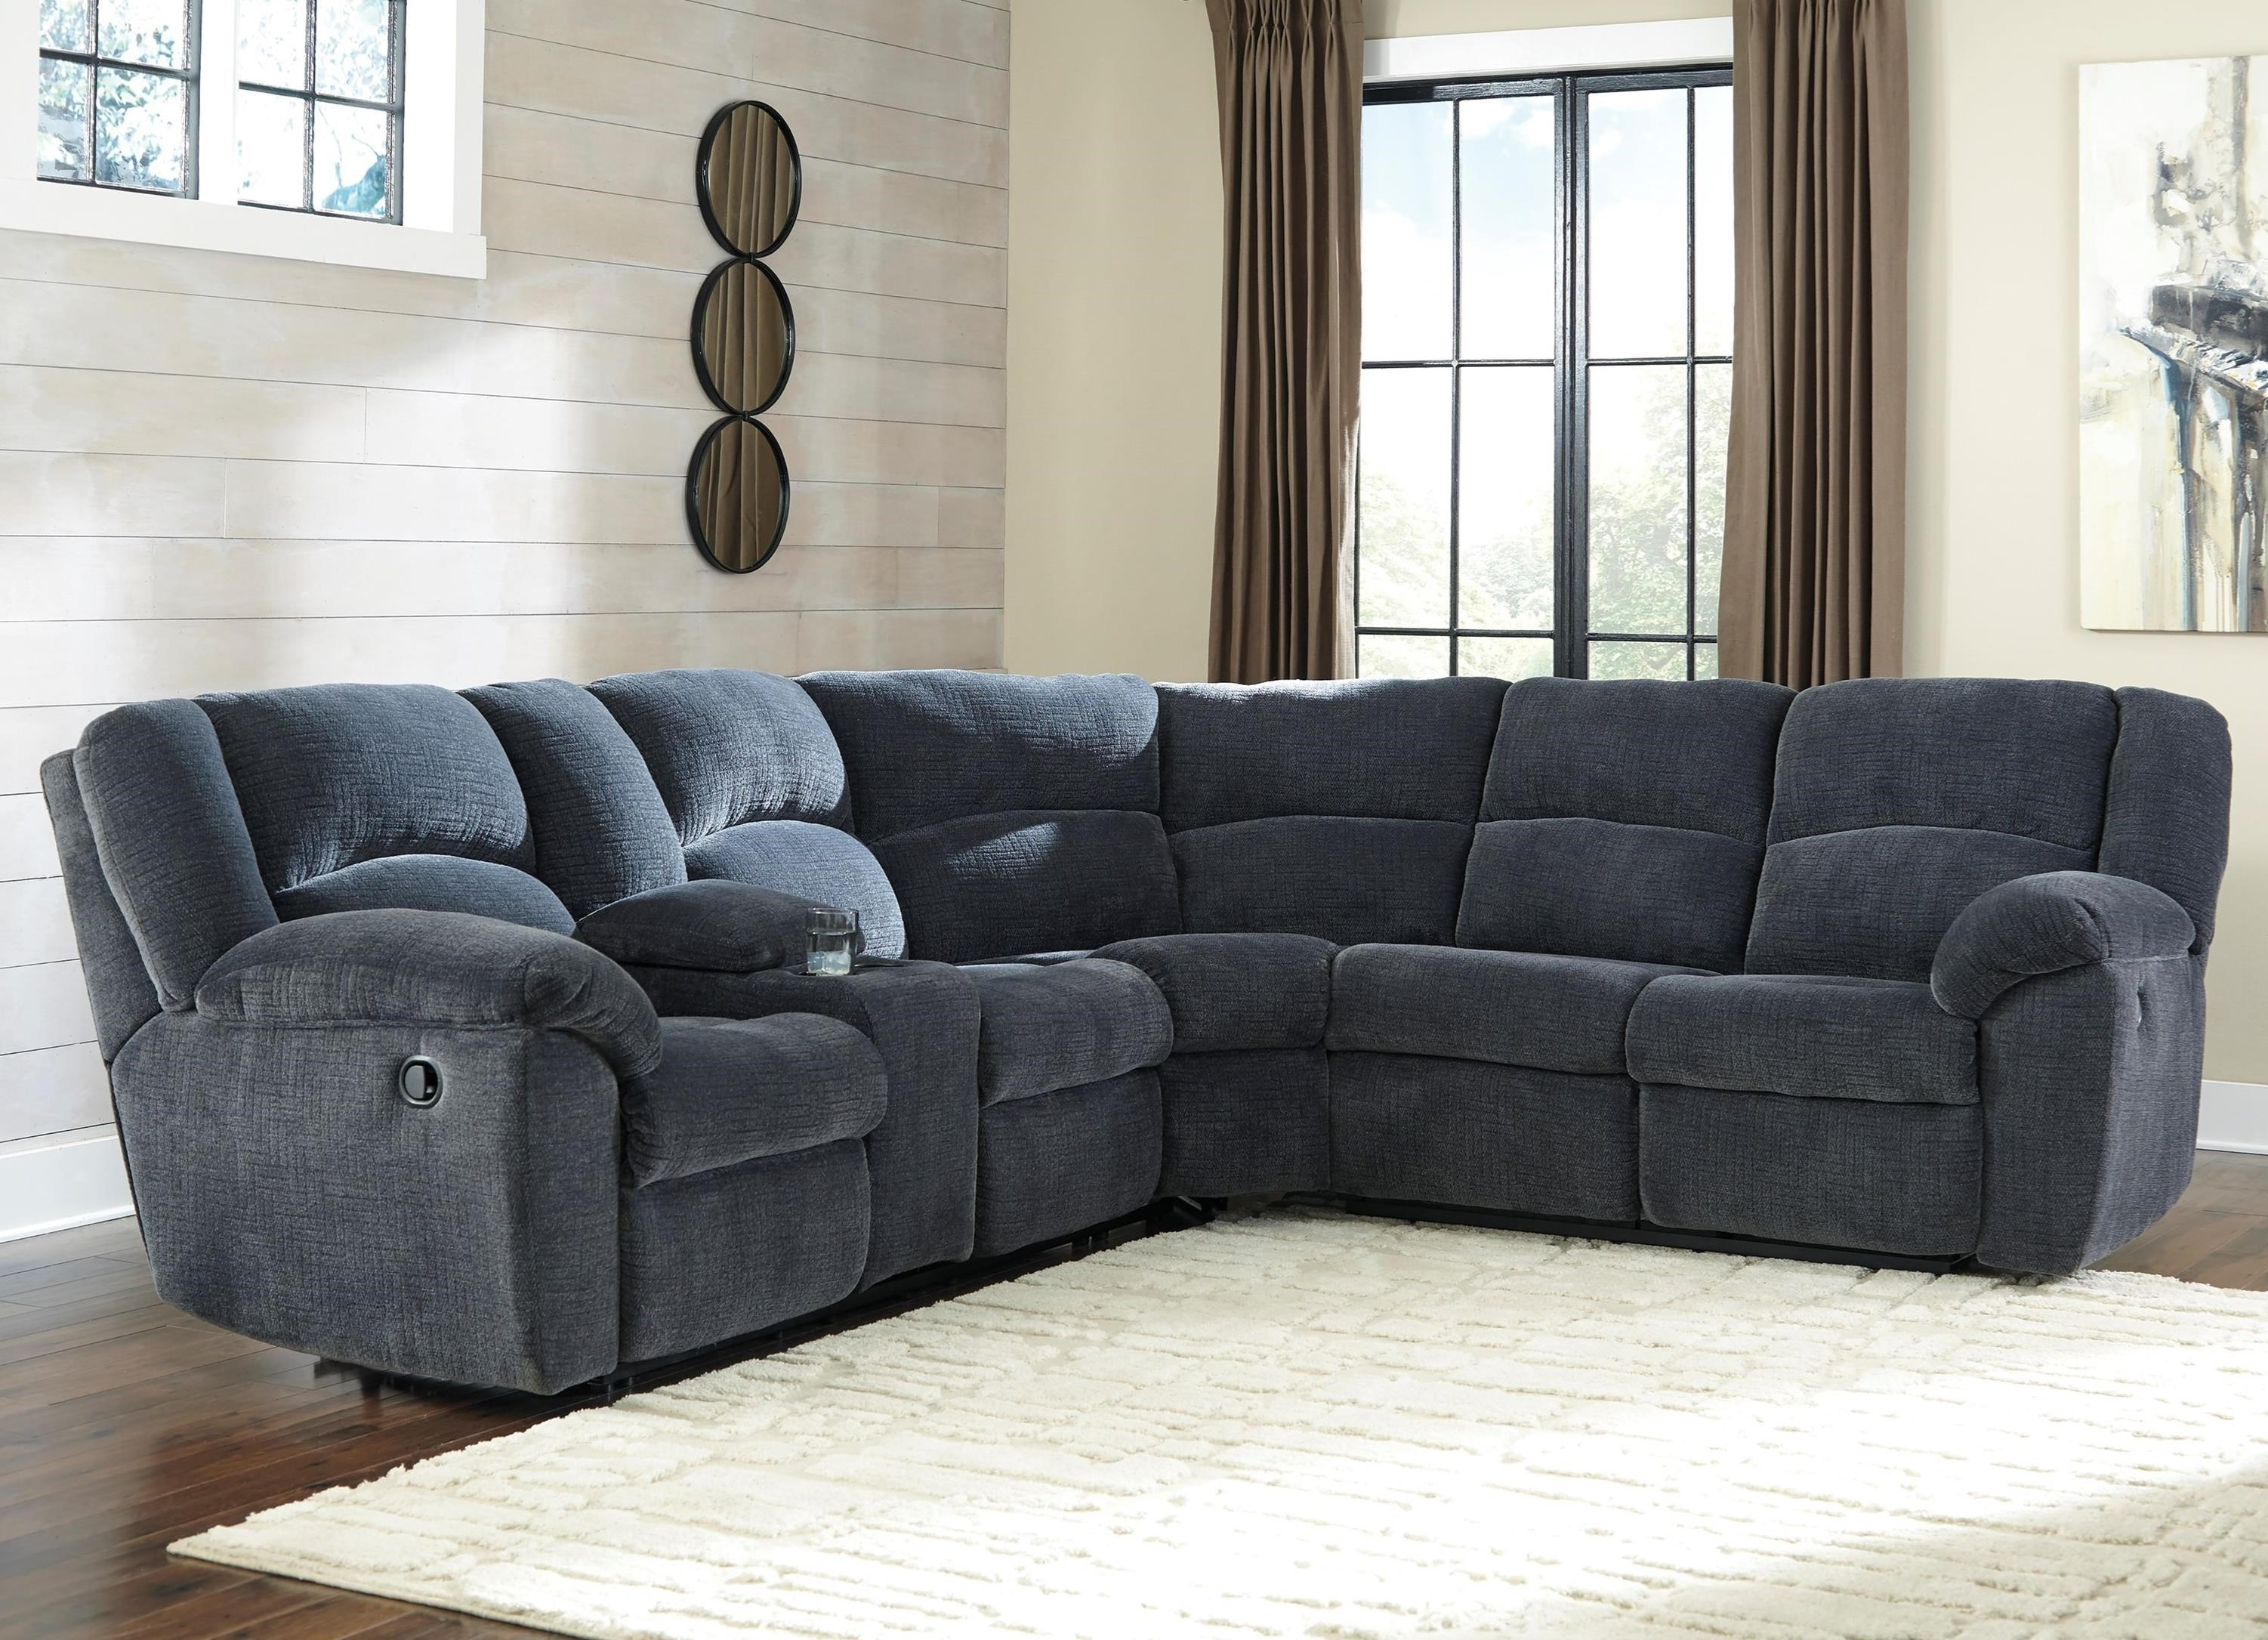 Grey Sectional Sofa Toronto Costco Gray Leather With Recliners Light With Regard To Sectional Sofas In Toronto (View 10 of 10)